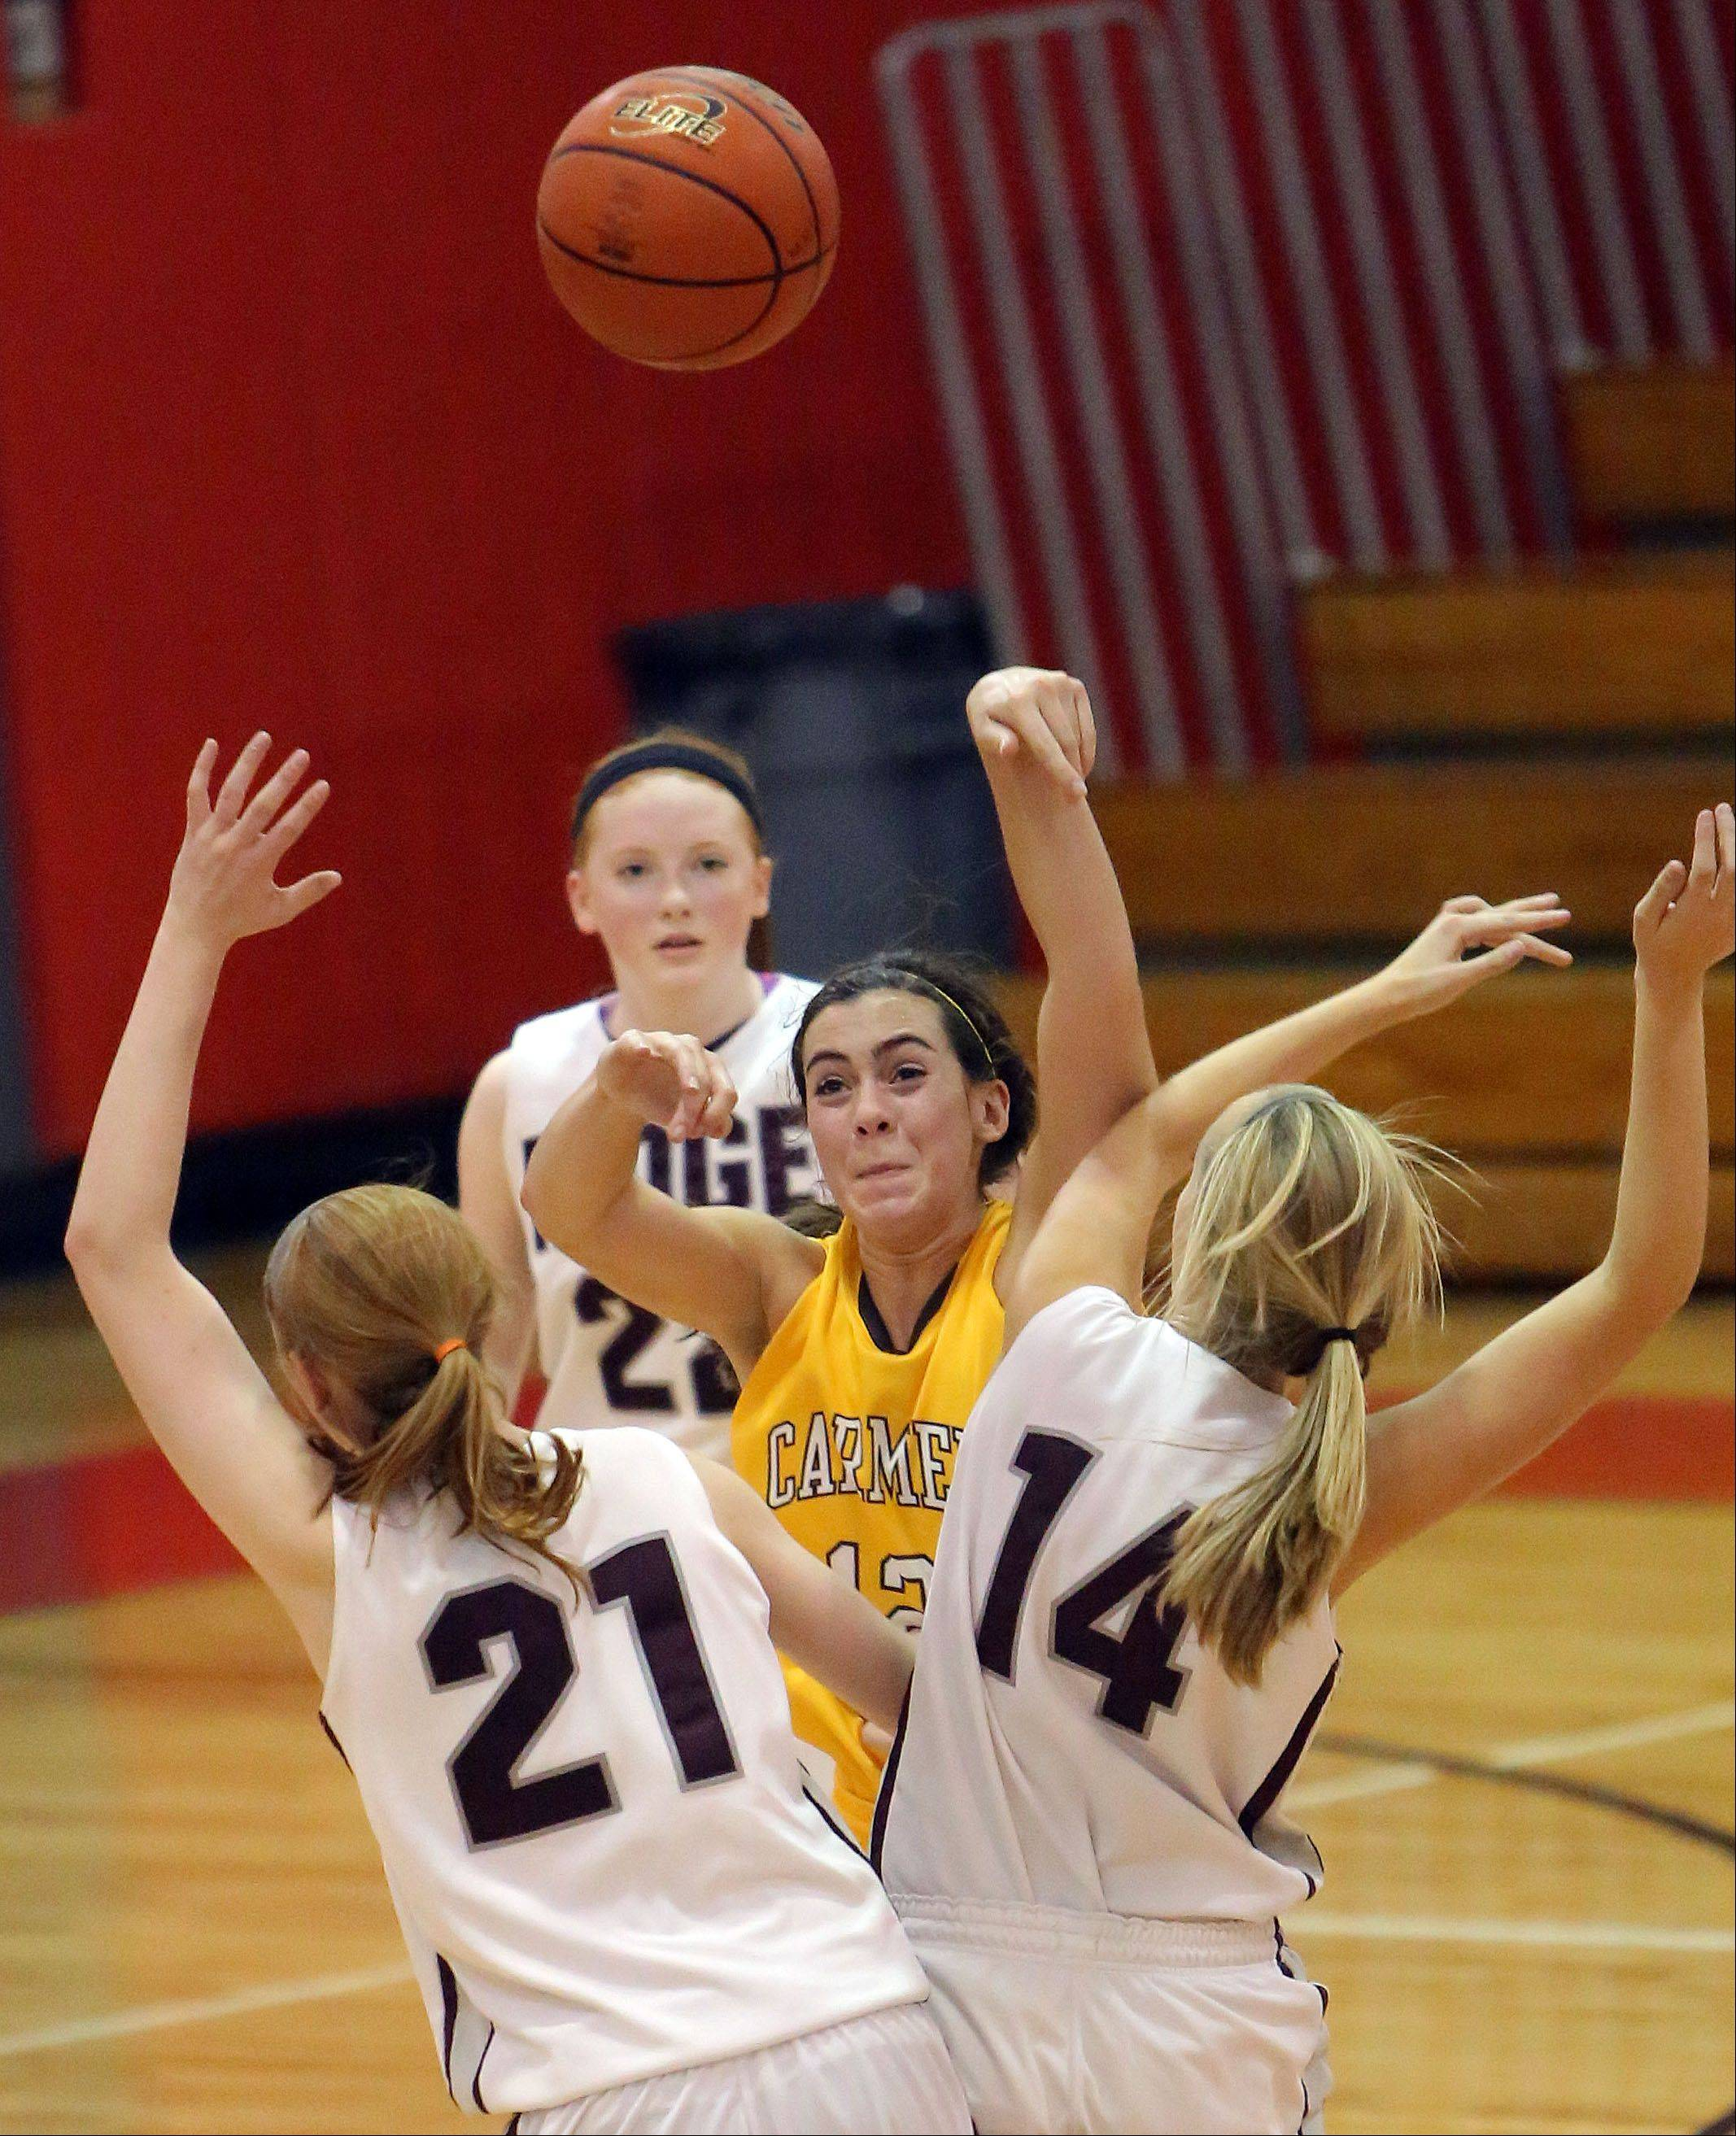 Carmel's Kathleen Felicelli, middle, passes over Prairie Ridge's Kelly Klendworth, left, and Sarah Kilhoffer on Wednesday at Mundelein.